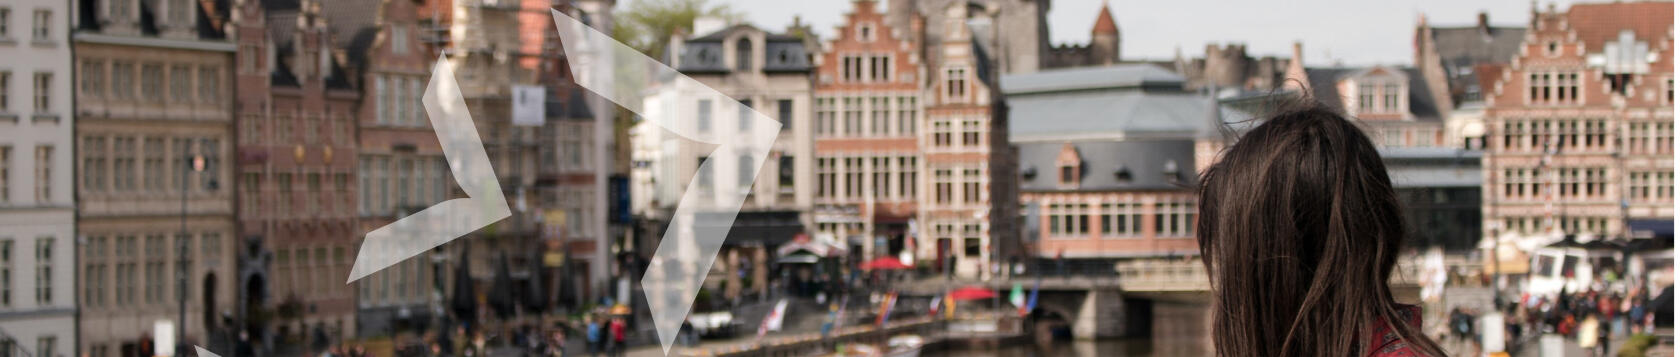 Invest in Ghent - Life in Ghent - header